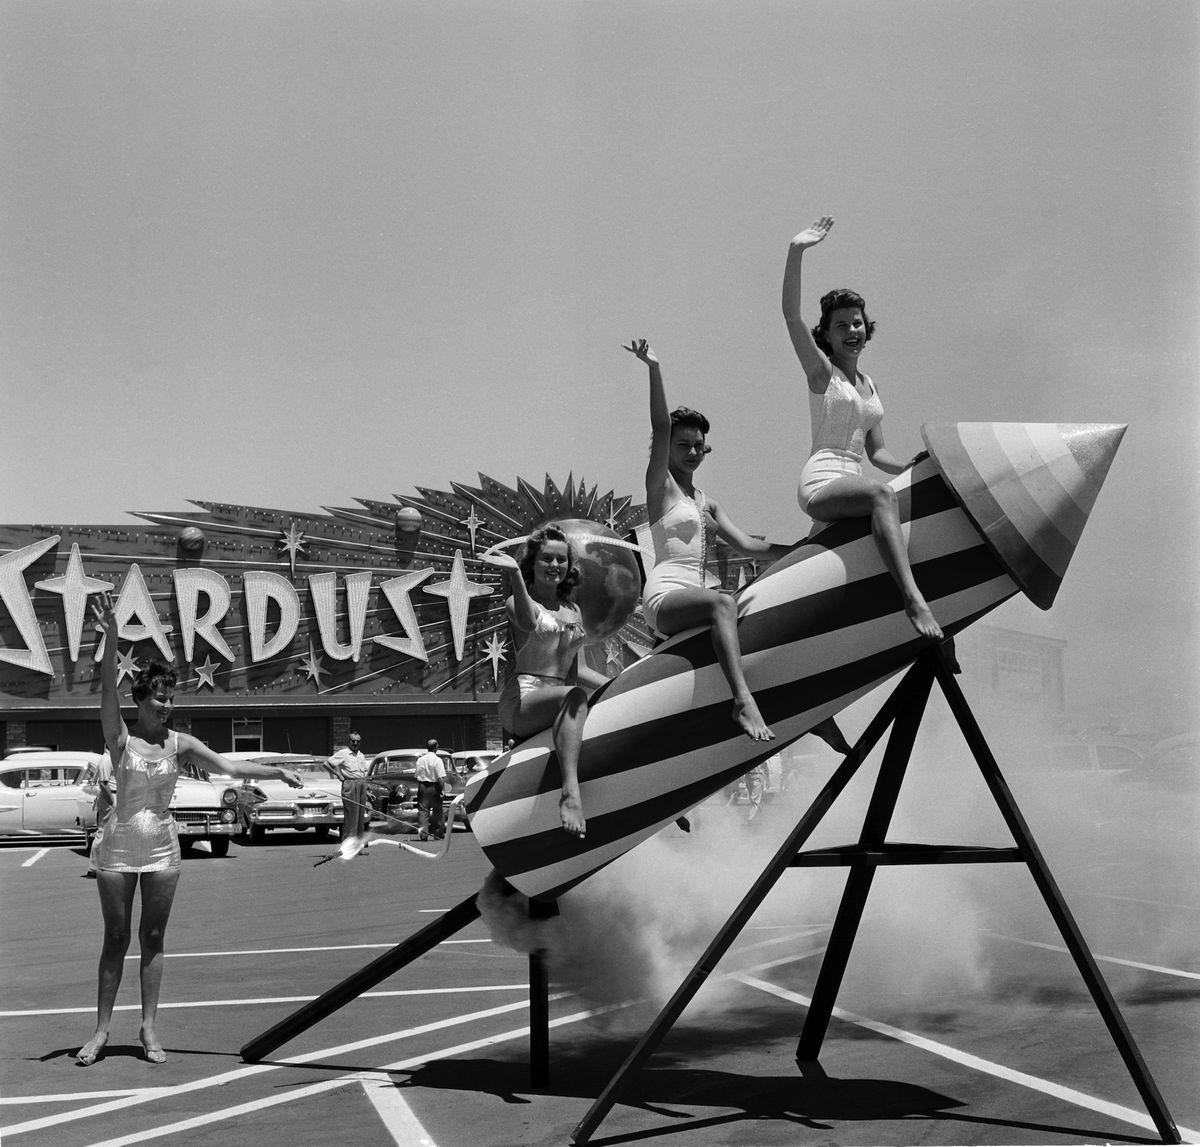 Slide 24 of 50:  Women sit and pose on a rocket outside the Stardust Resort and Casino in 1958. When the hotel opened, it had the largest casino and swimming pool in Nevada.